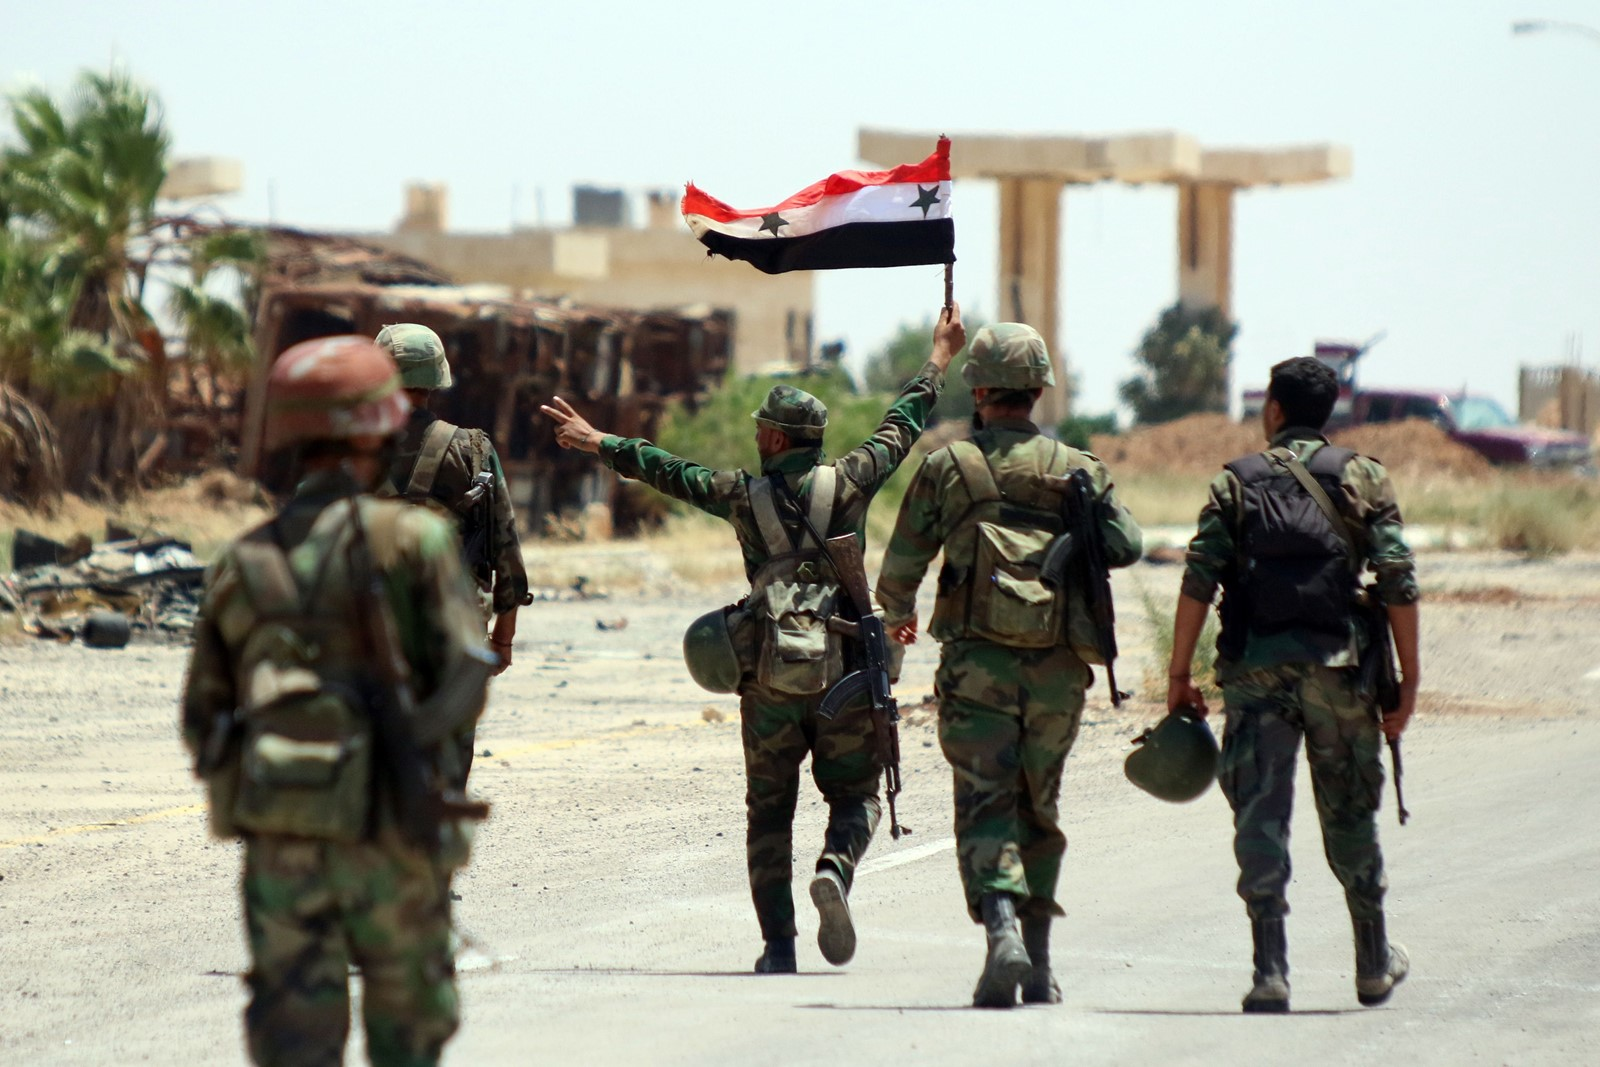 Soldiers brandish the state flag at Syria's Nassib crossing on the southern border with Jordan, the latest victory for the government. — Photograph: Youssef Badawi/European Pressphoto Agency/Shutterstock.